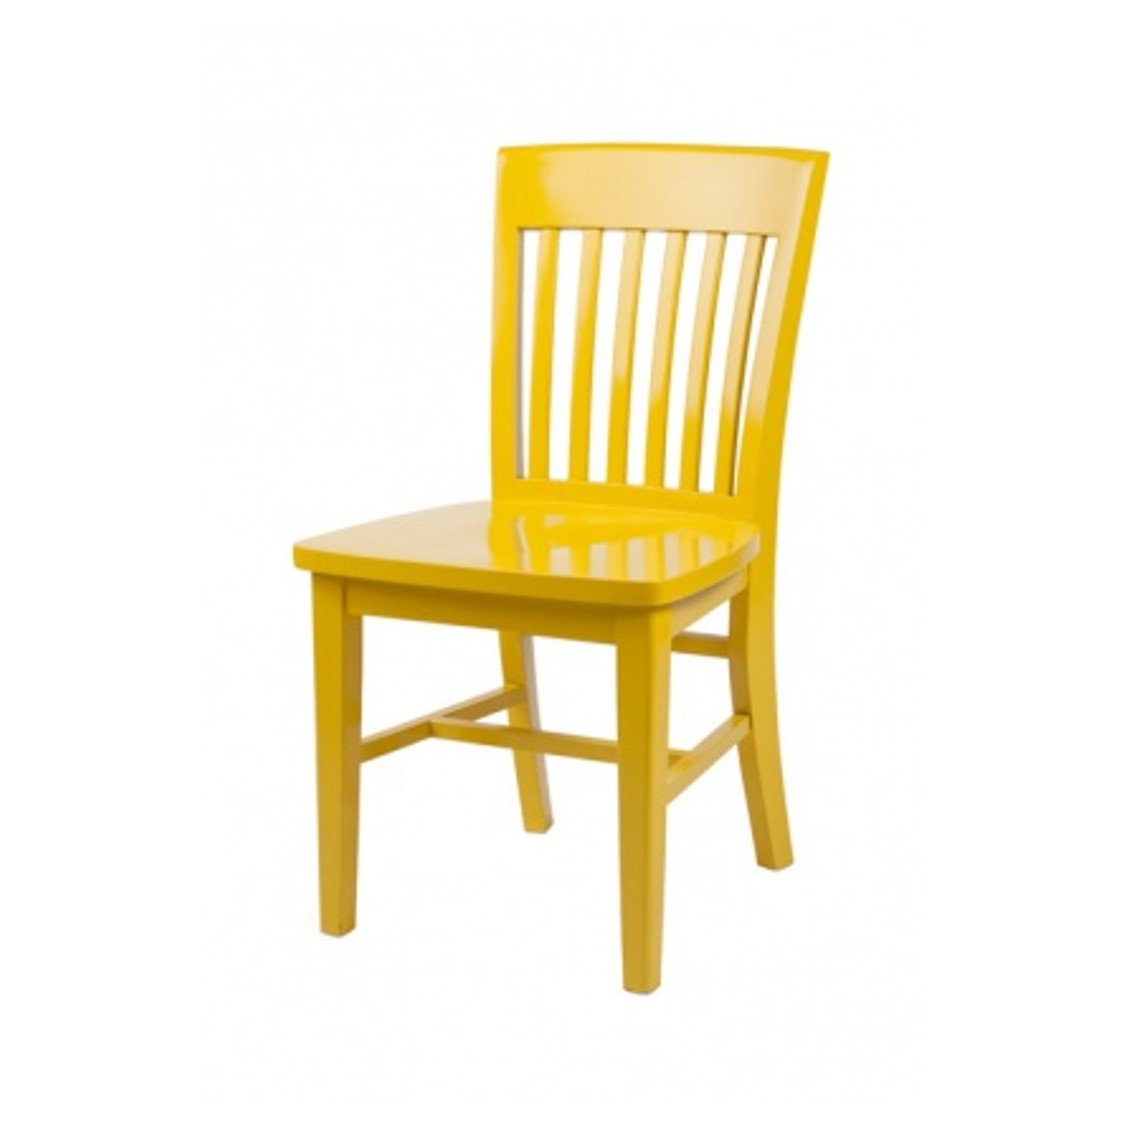 The Alpha wooden side chair is a classic style perfect for any cafe, coffee shop or restaurant. It can be stained to any wood or RAL colour finish.